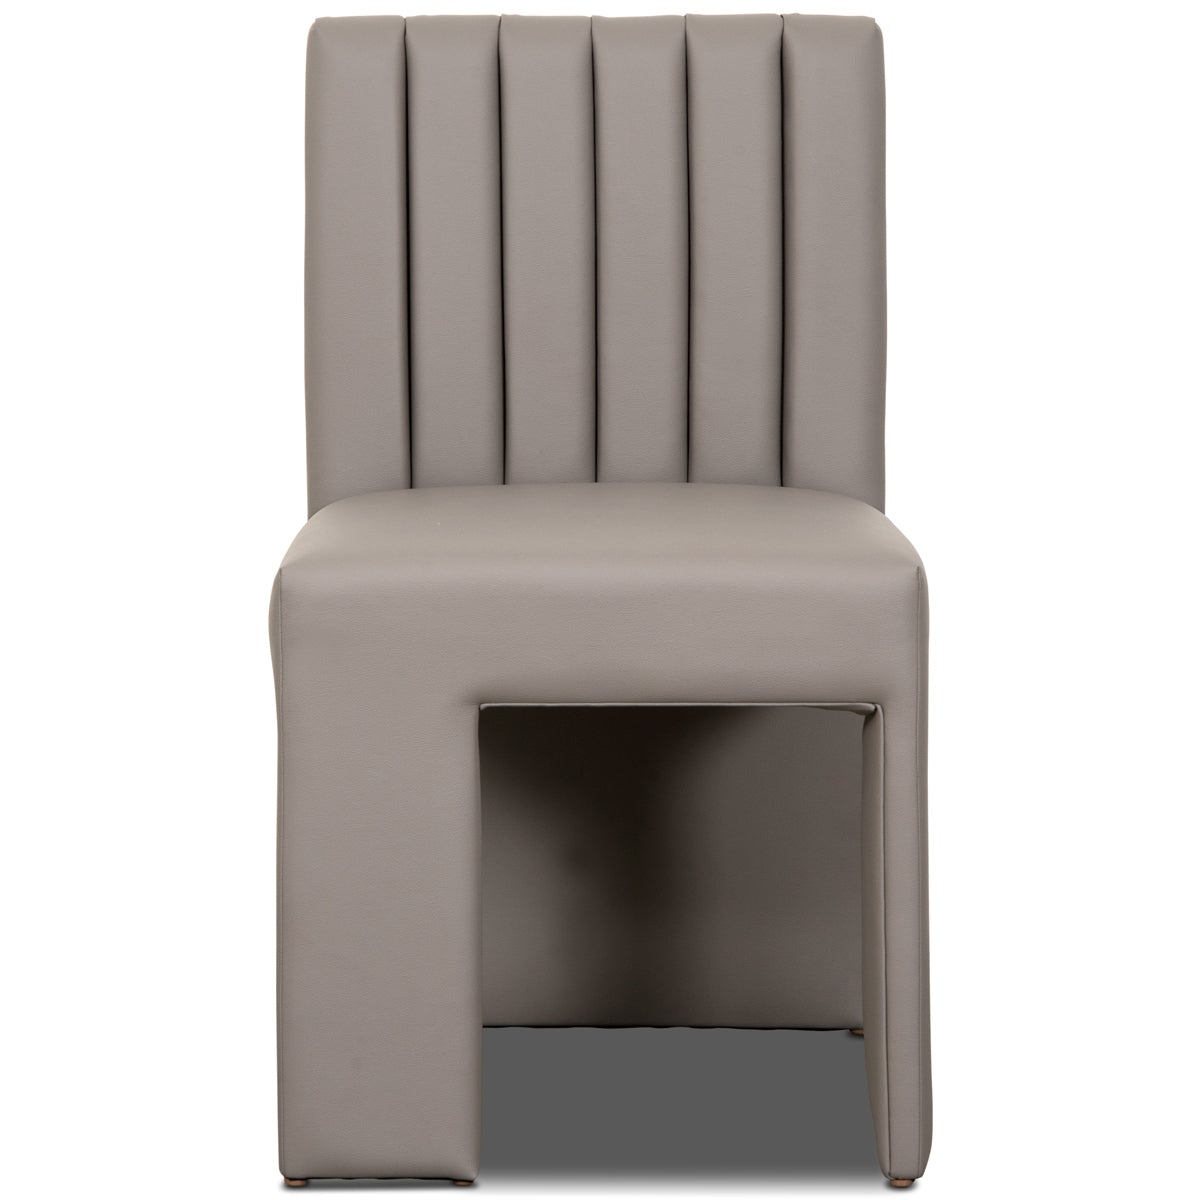 St. Martin Dining Chair in Faux Leather - ModShop1.com